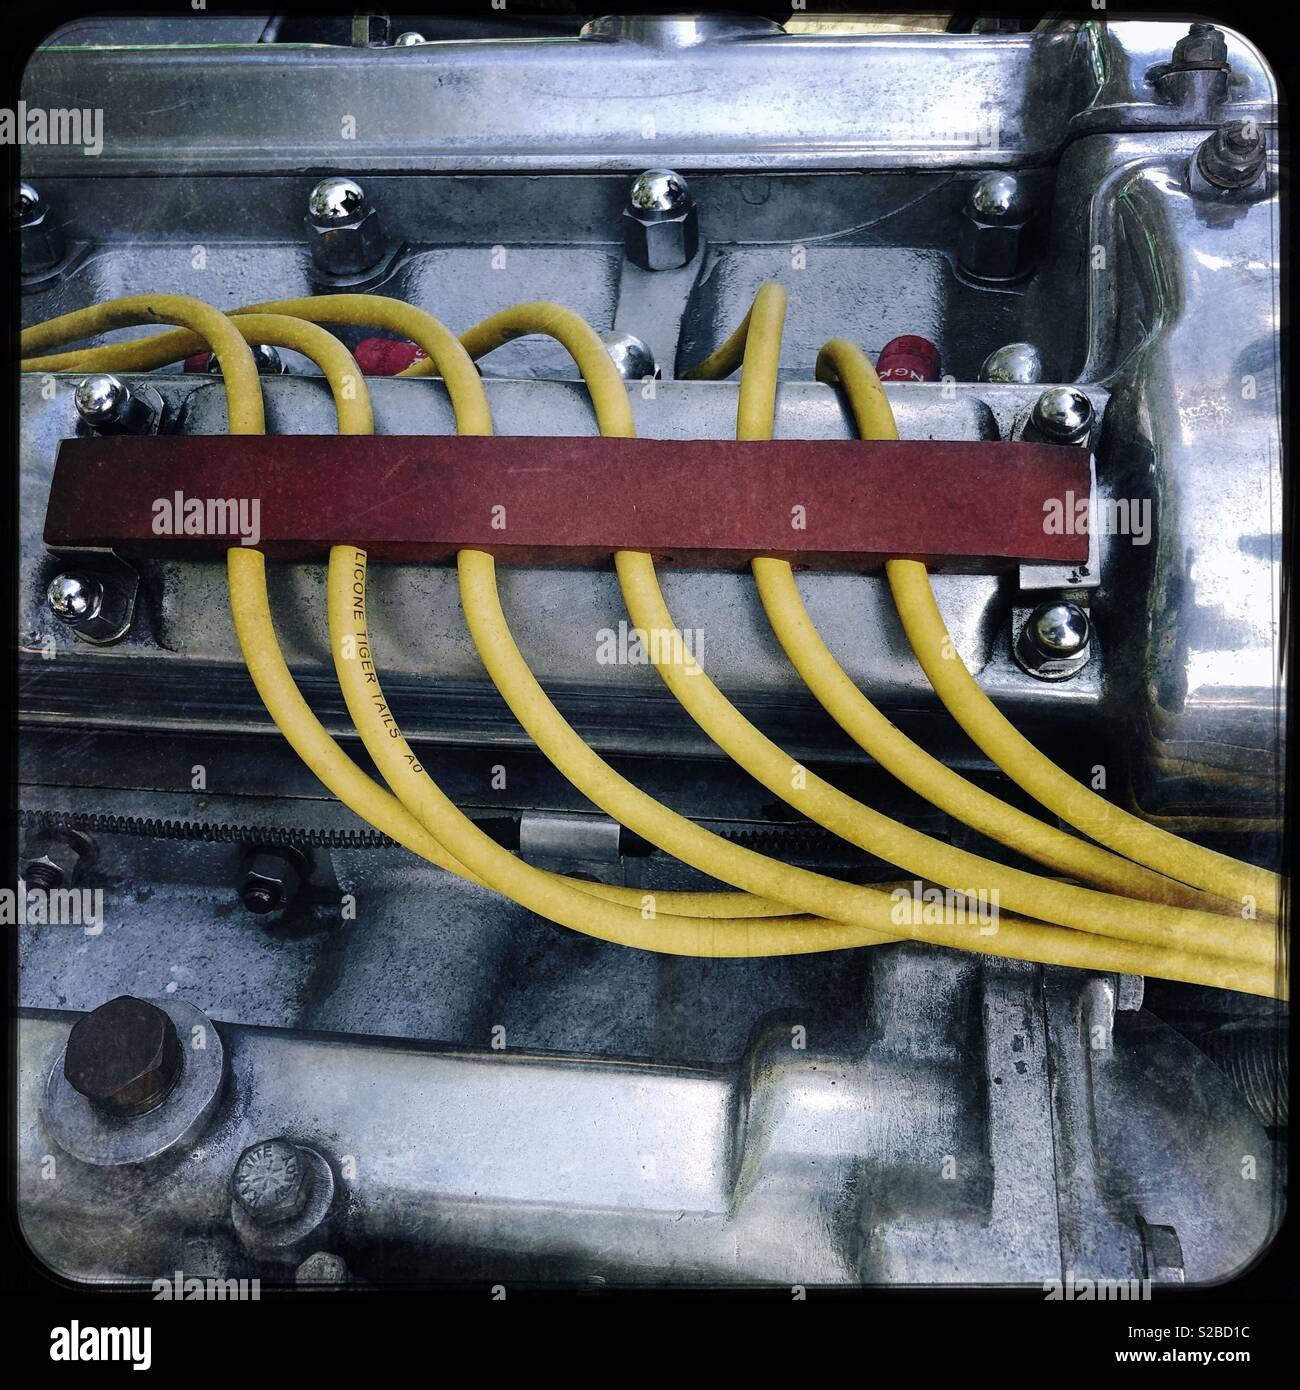 Clic engine and yellow spark plug wires Stock Photo ... on